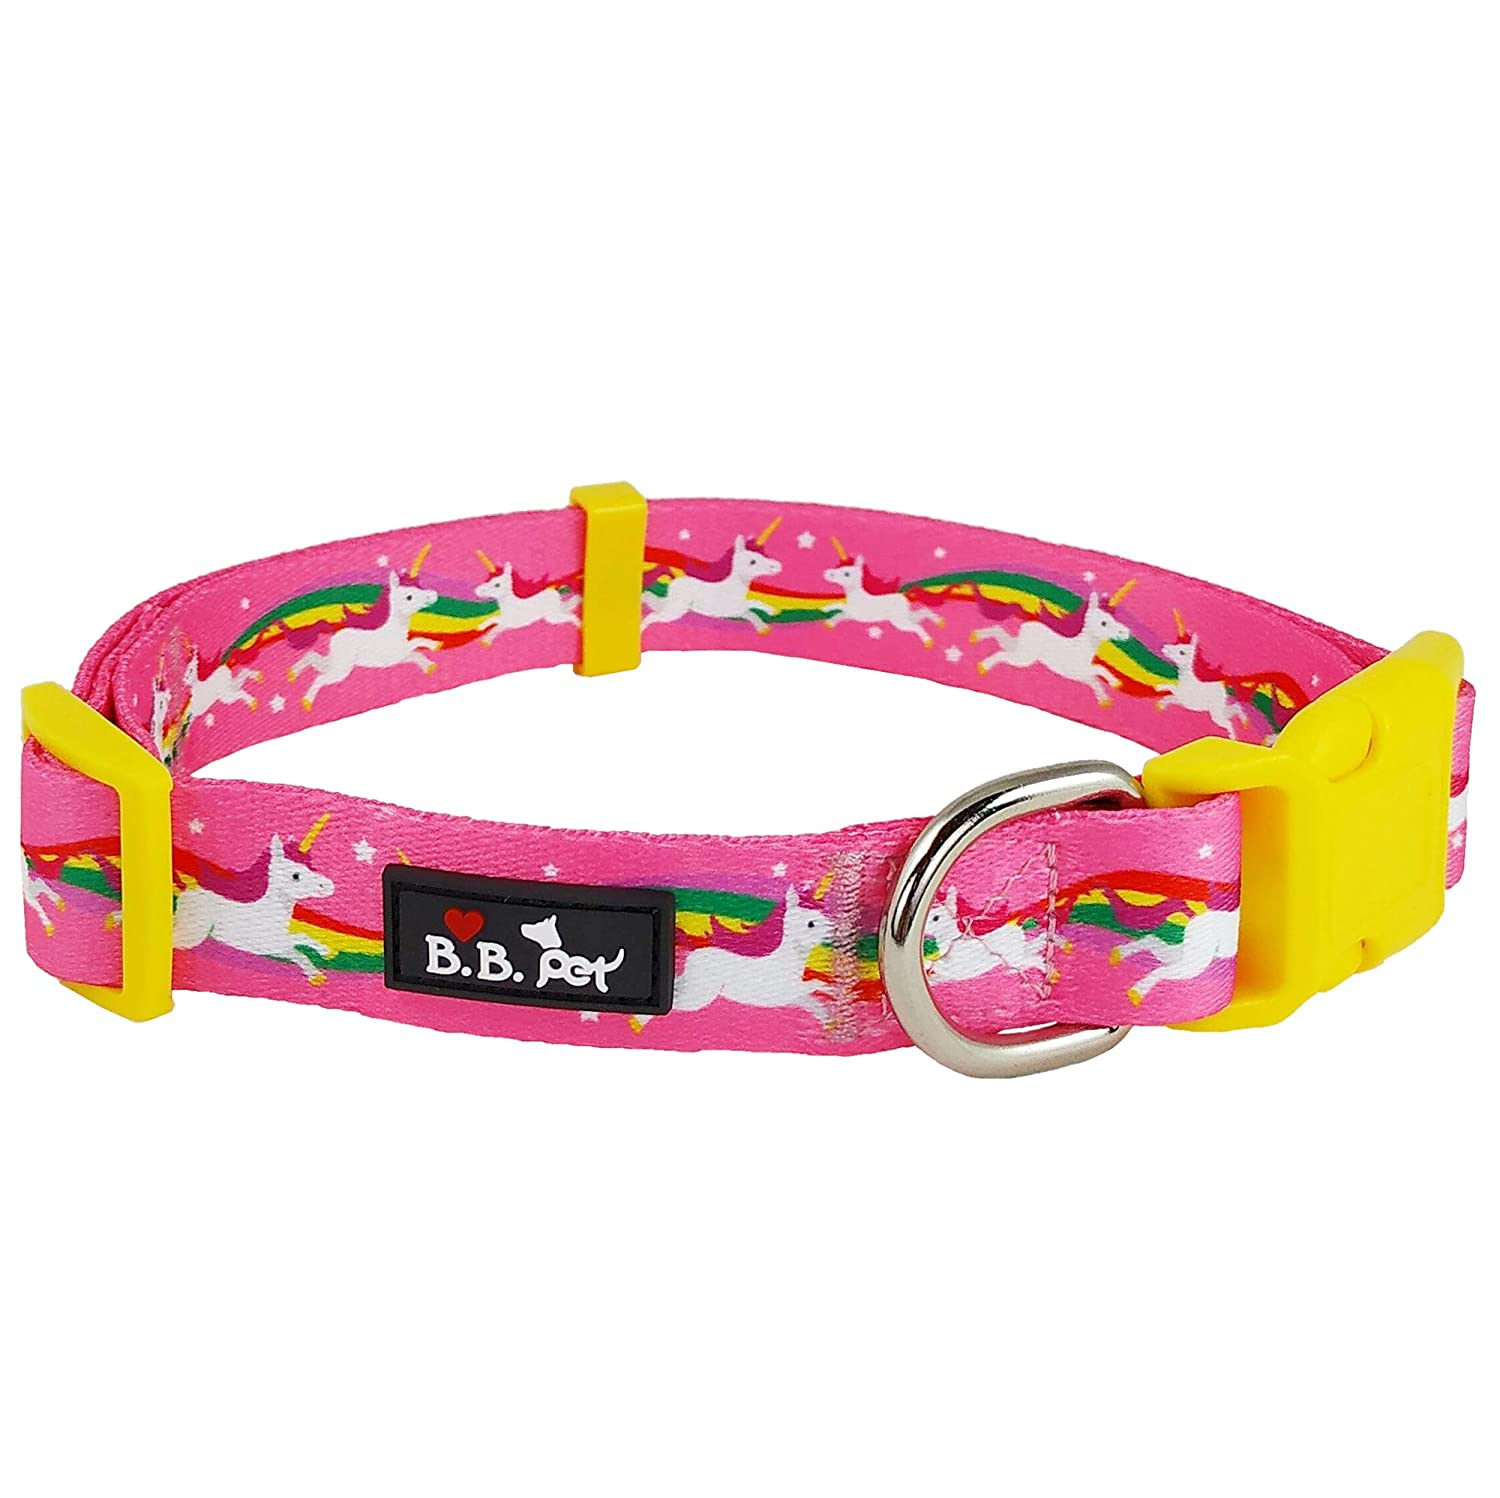 18\ Bestbuddy Pet Unicorn and Rainbow Hot Pink Fairytale Durable Nylon Designer Fashion Dog Collar Trendy Comfortable Adjustable Dog Collar with Buckle BBP002